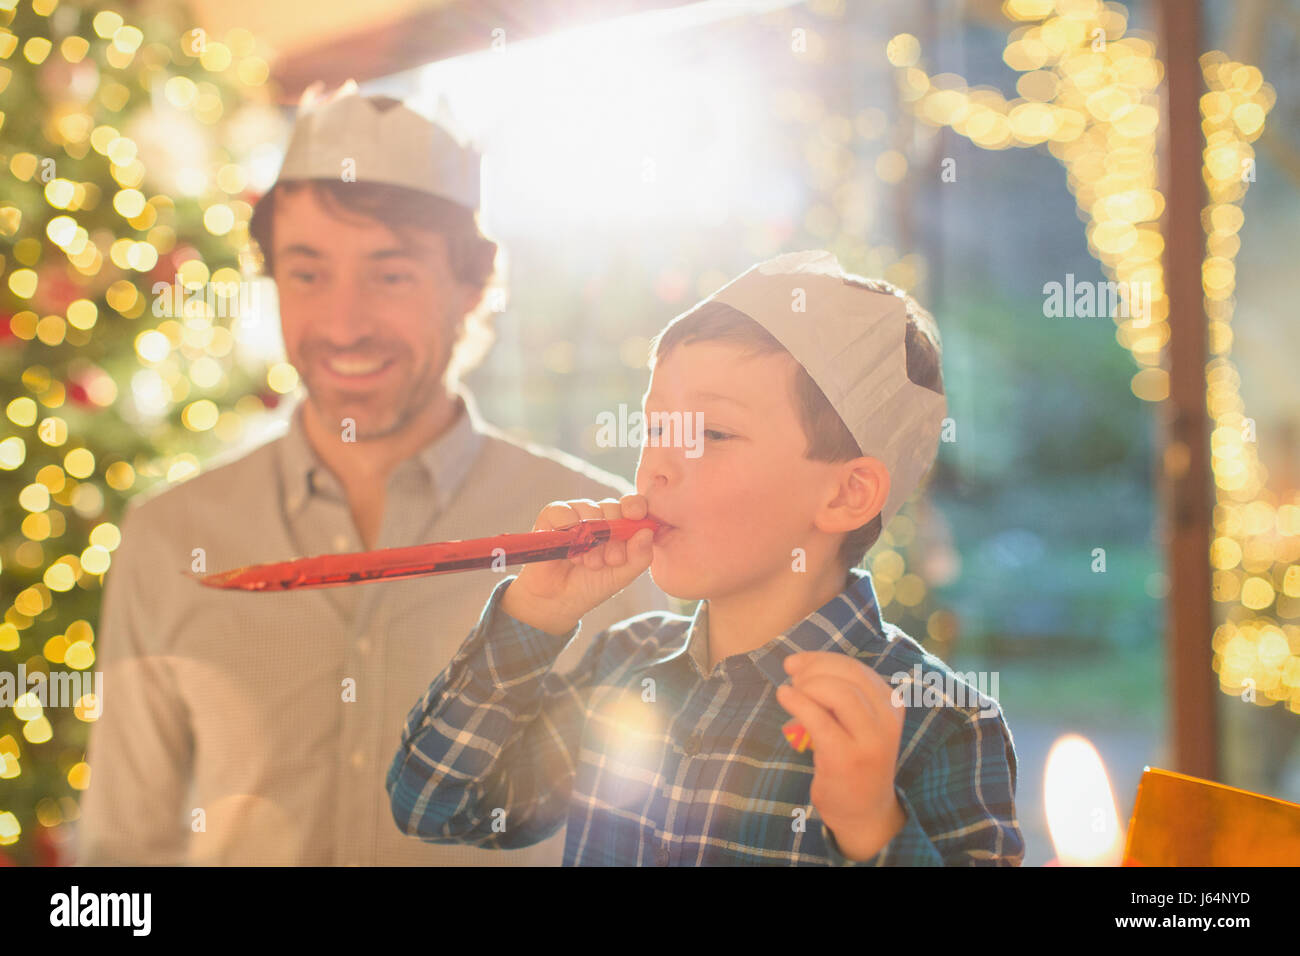 464b9924b4c42 Father and son wearing Christmas paper crowns and blowing party favor